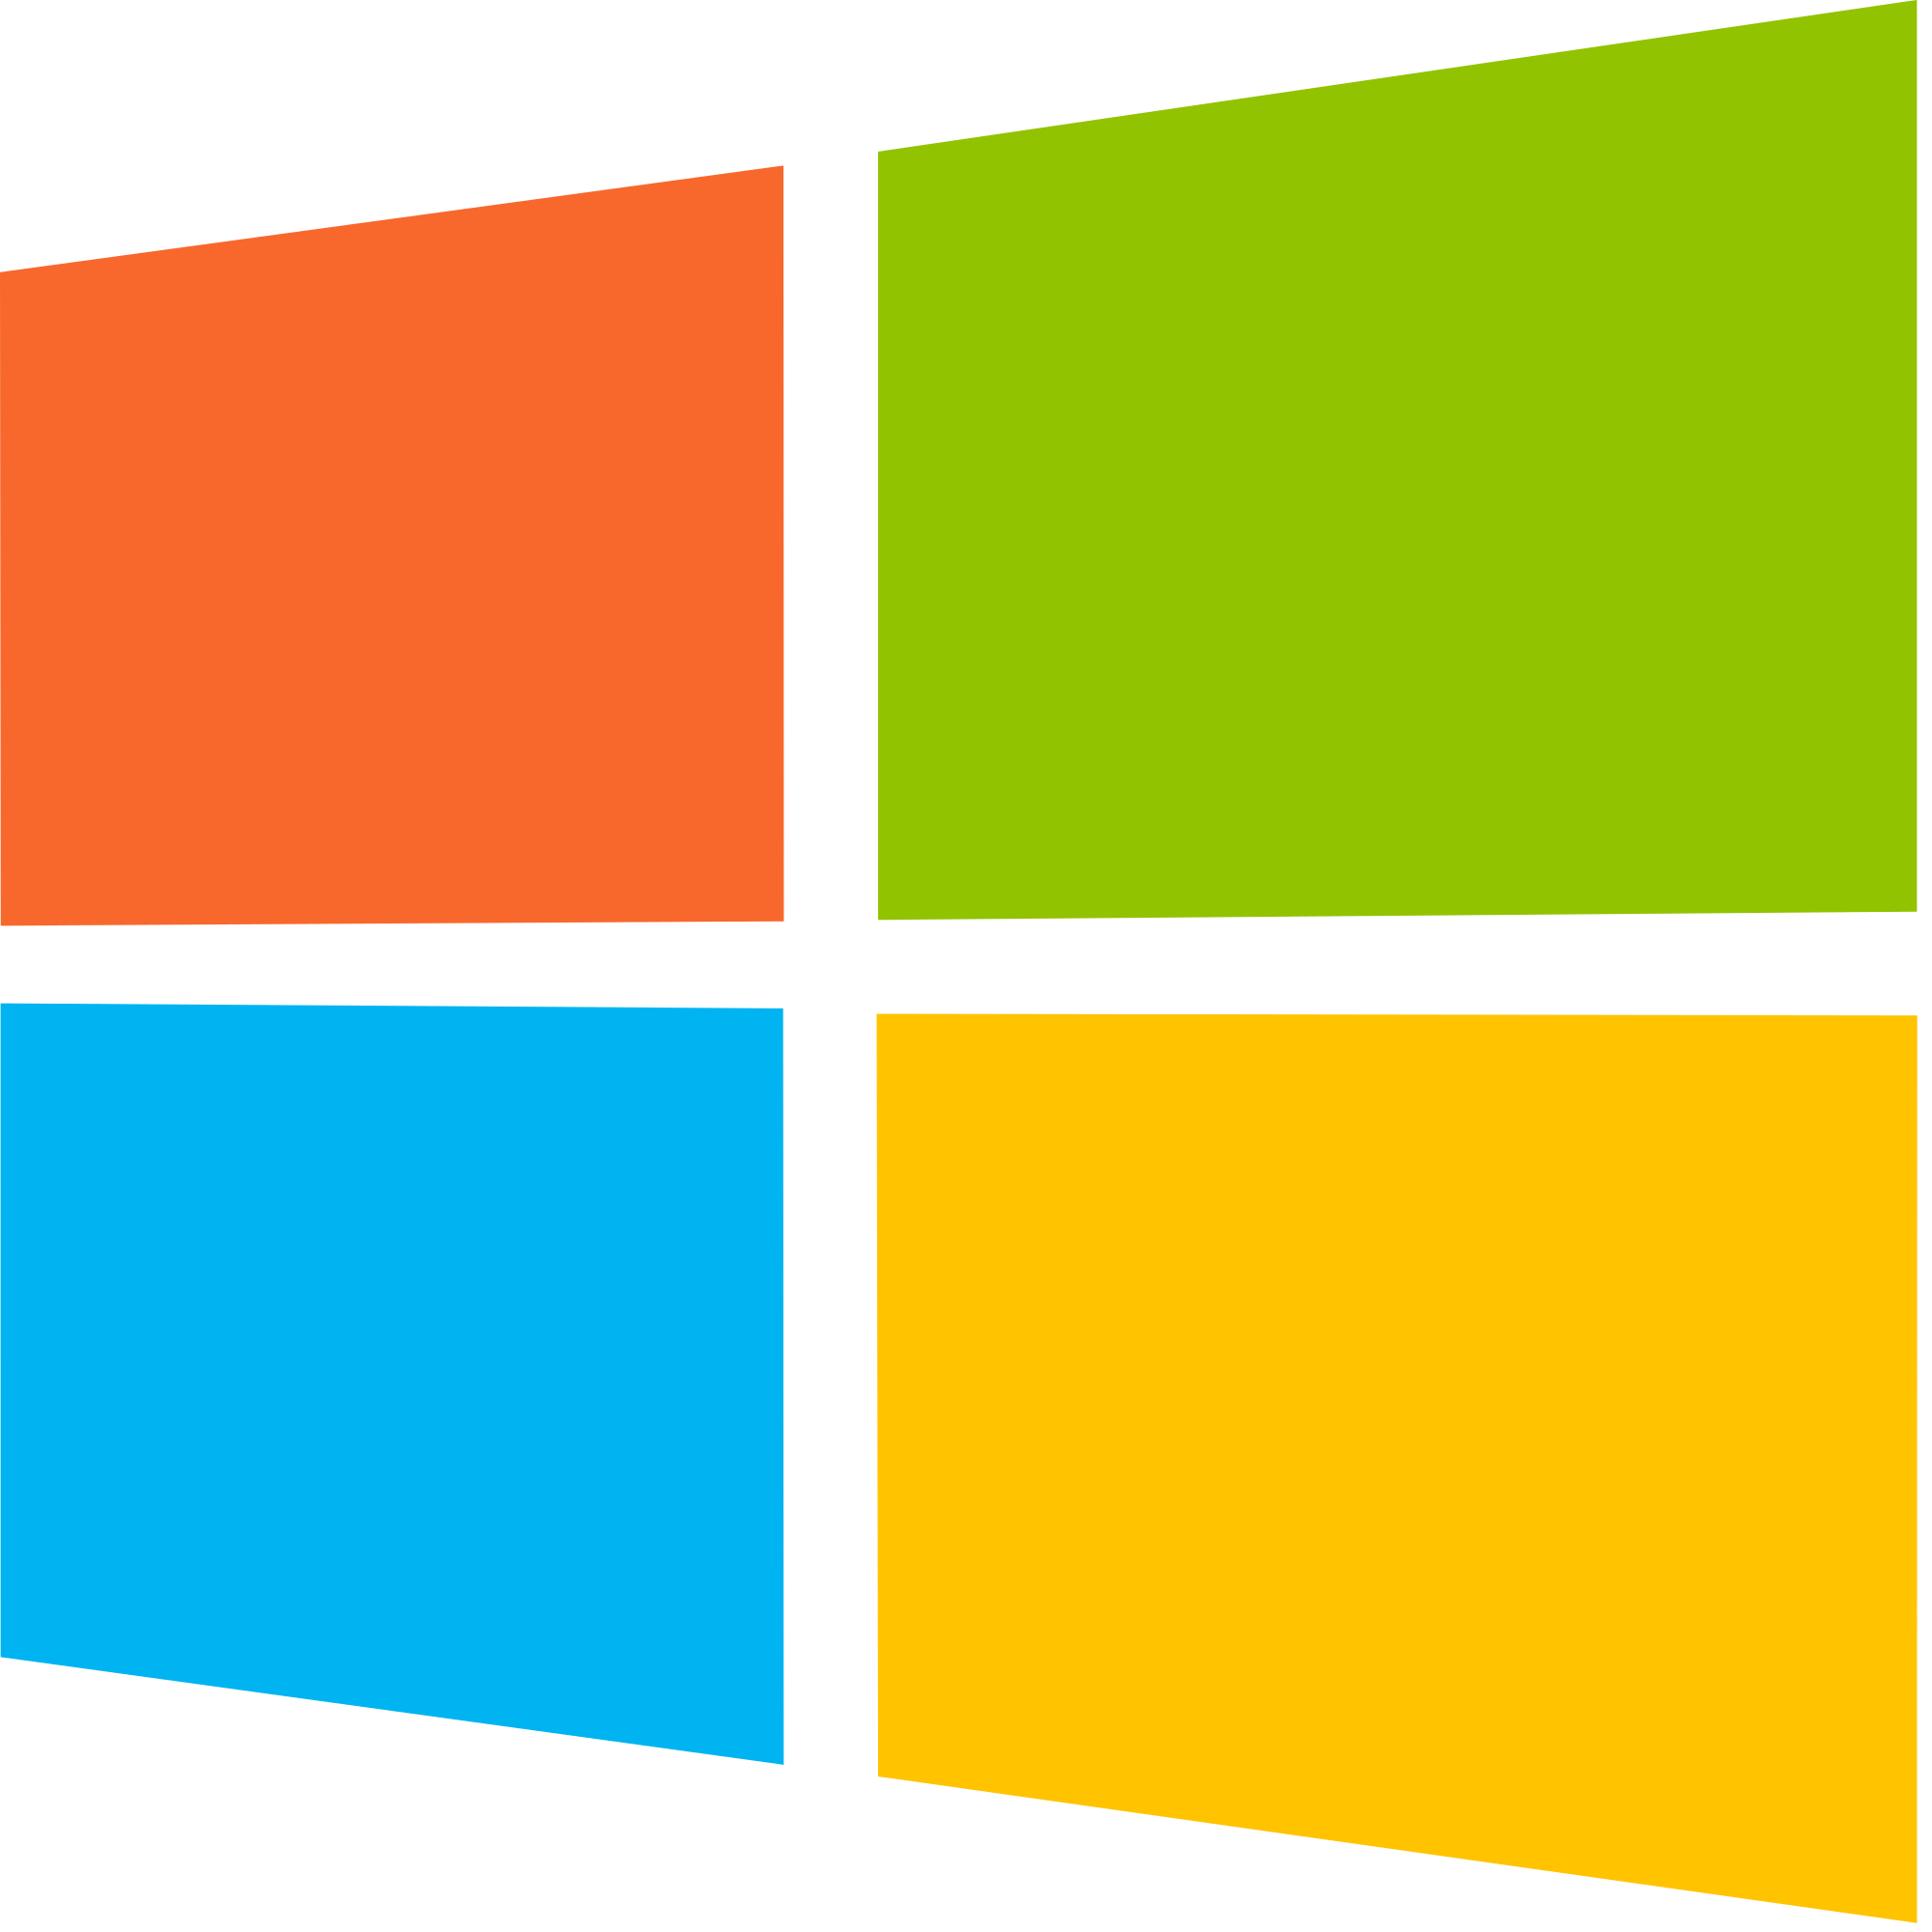 We Examine The Windows 10 Update Including Benefits And